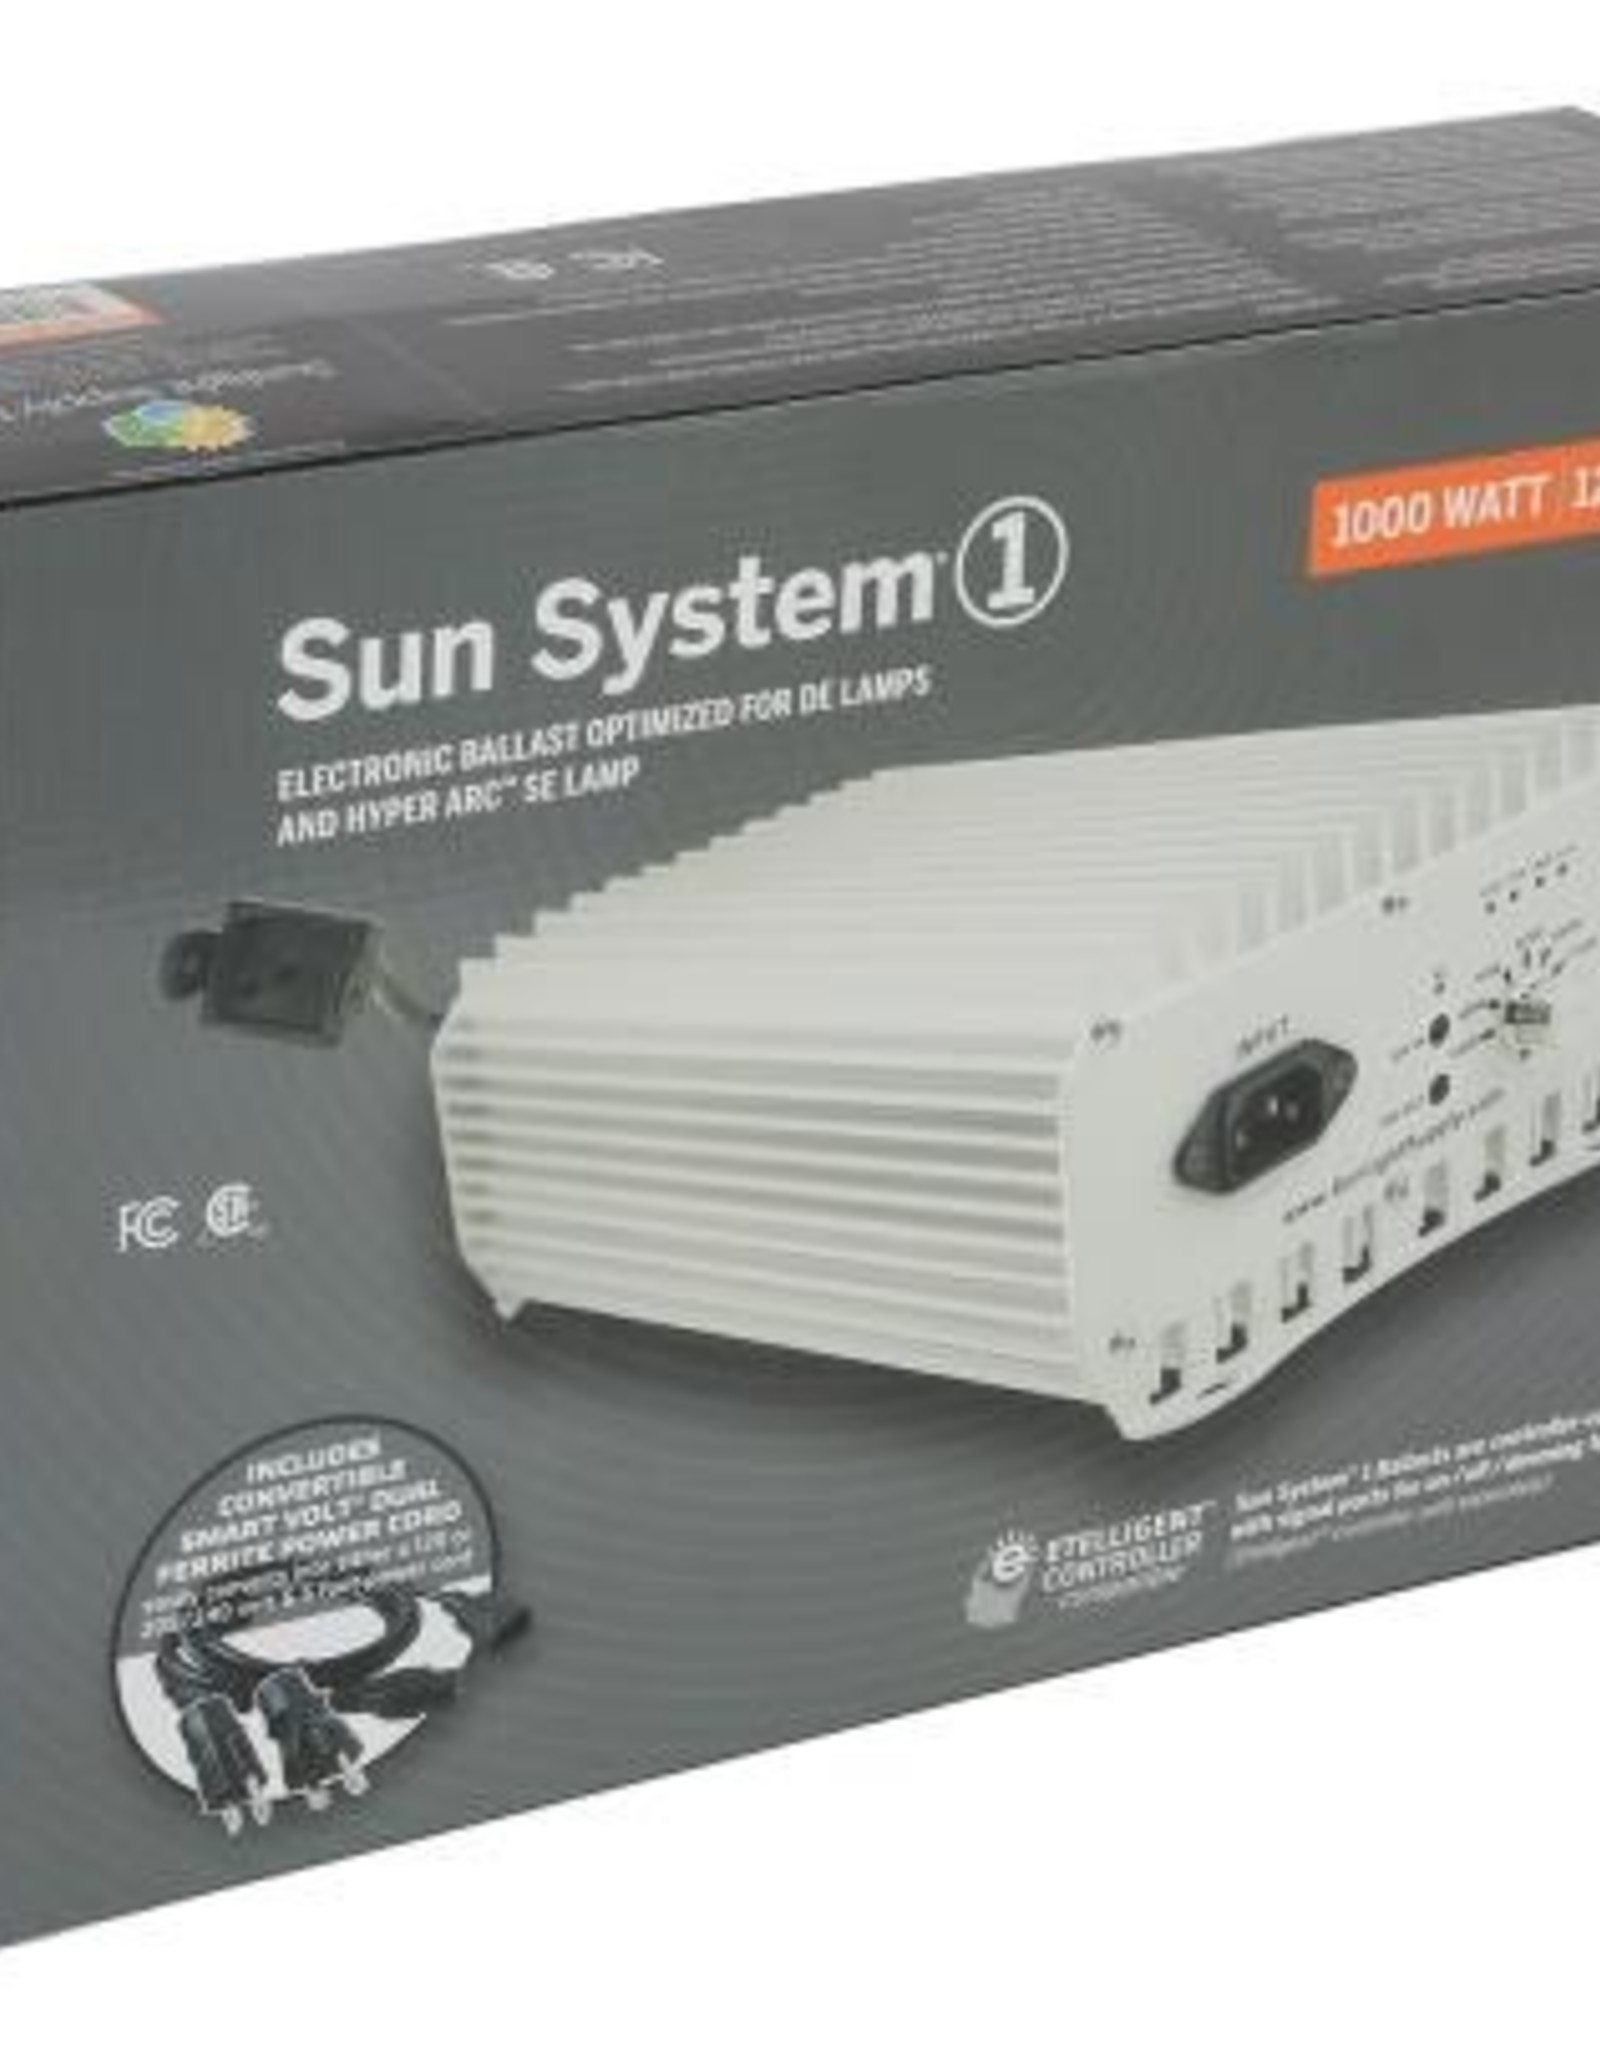 SUN SYSTEM The Sun System® 1 DE ballast(s) is Etelligent™ compatible with signal ports for on/off/dimming functions by this wired controller. The Sun System® 1 advanced 105 kHz microprocessor is designed specifically to drive DE lamps at a sustained peak performance